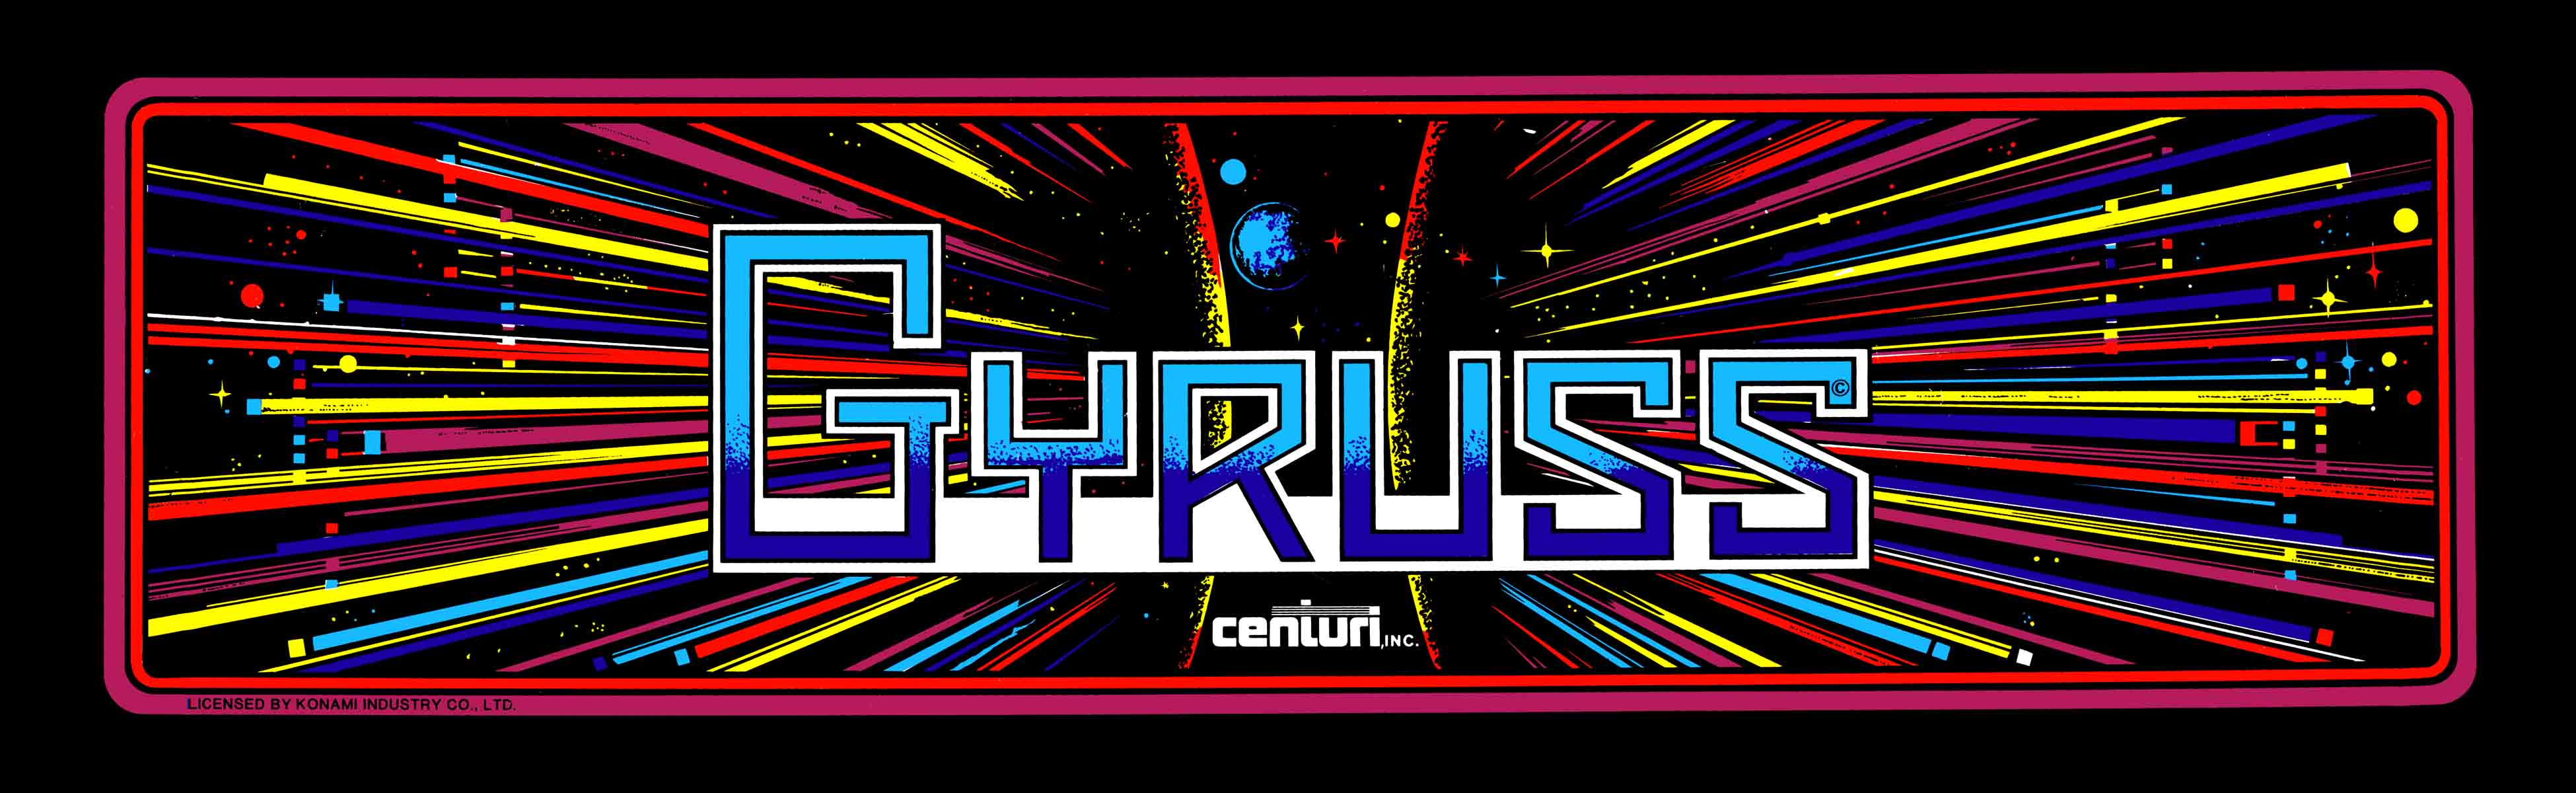 Image result for gyruss arcade logo